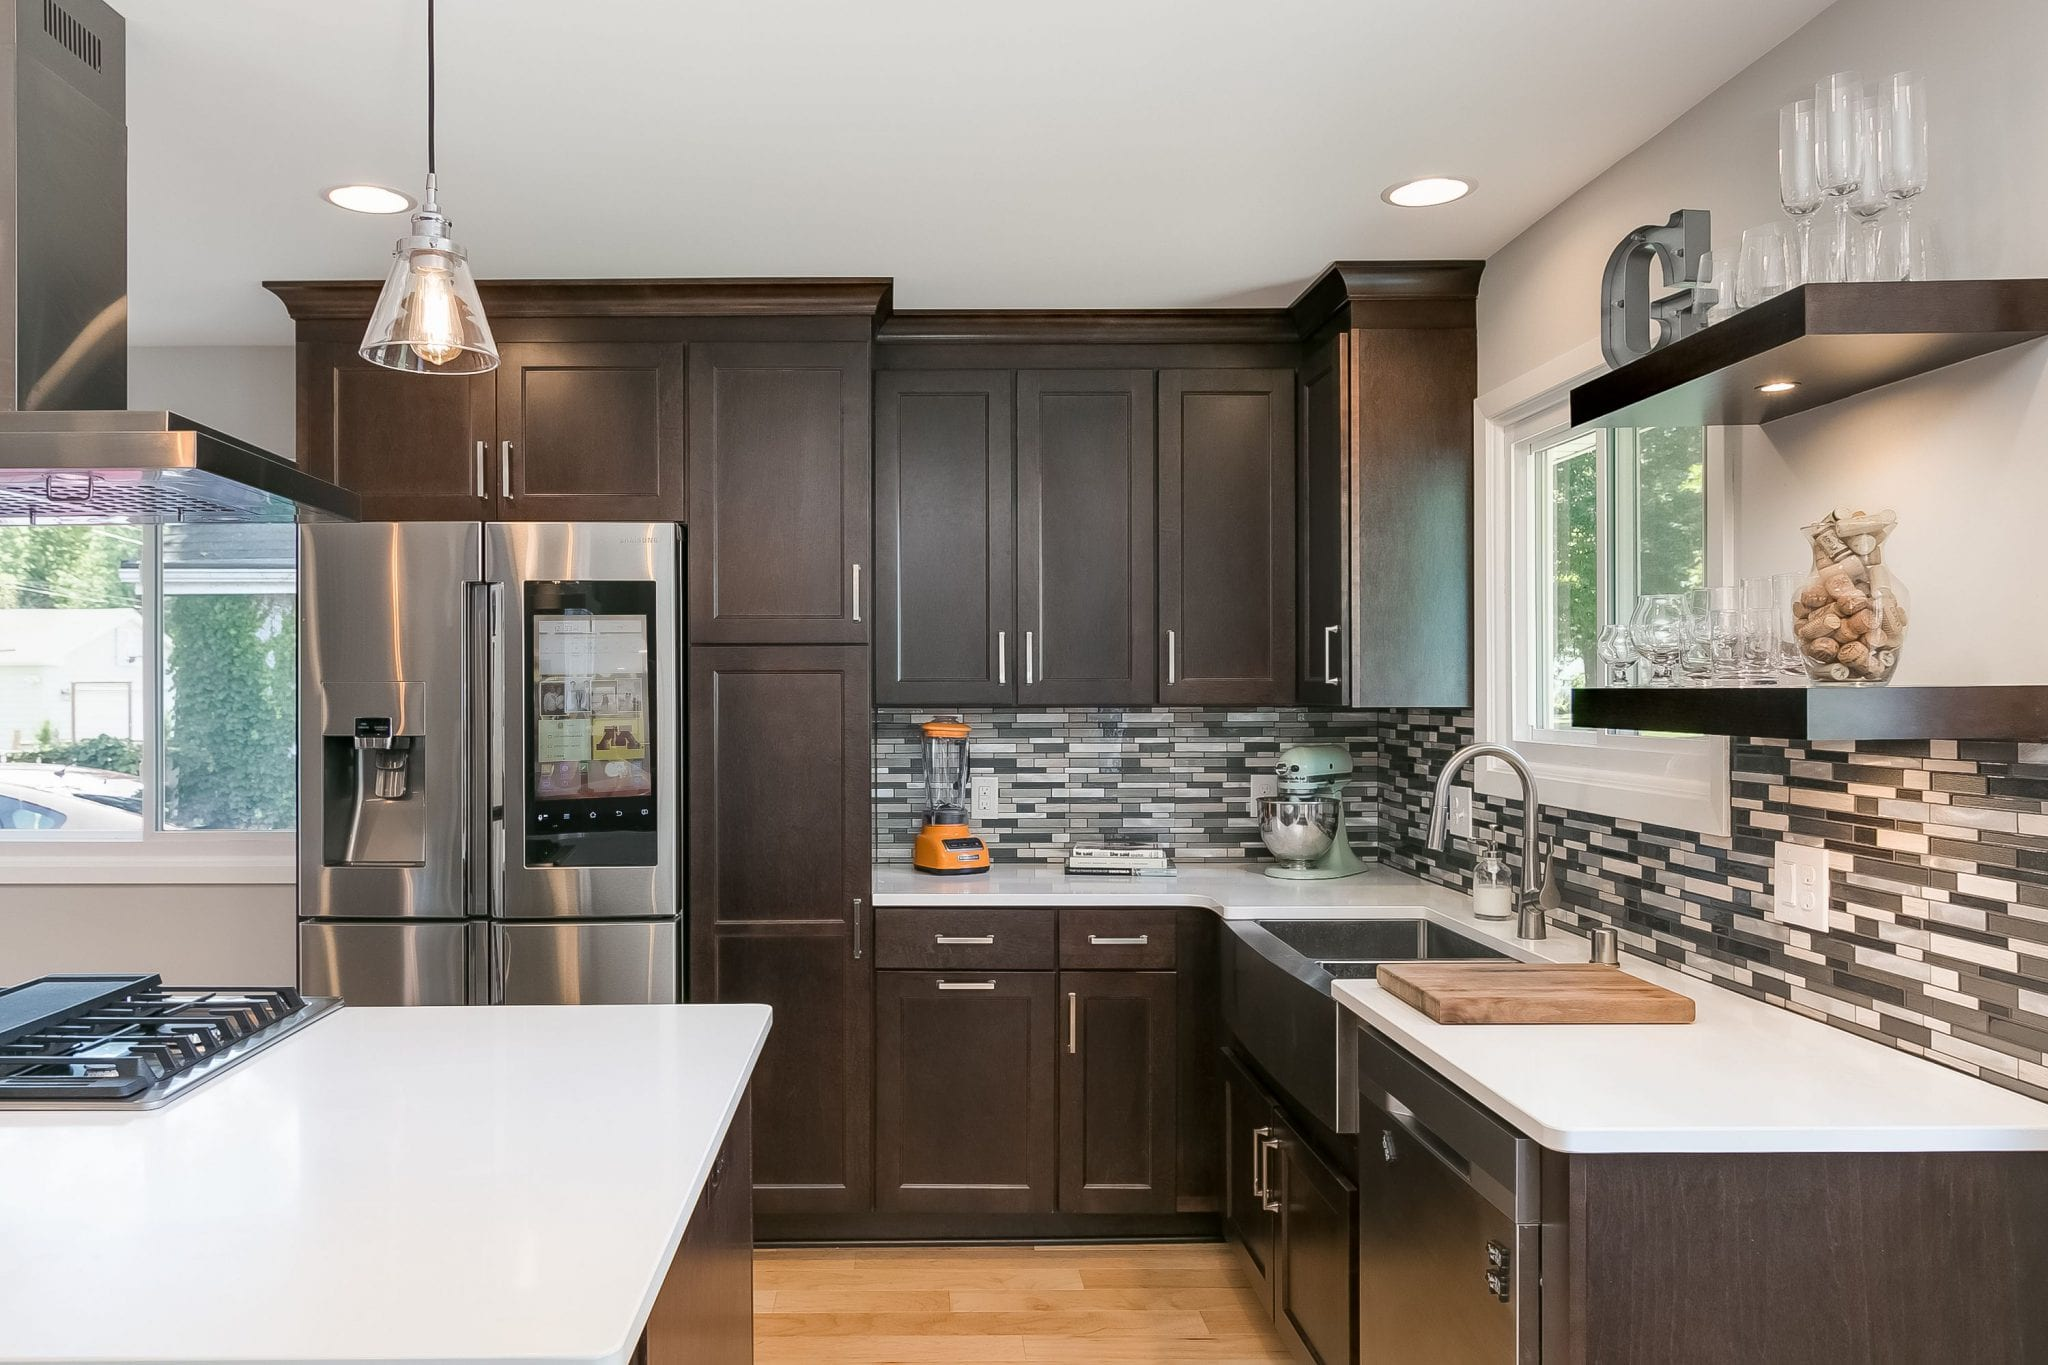 kitchen remodel with dark wood accents | fbc remodel